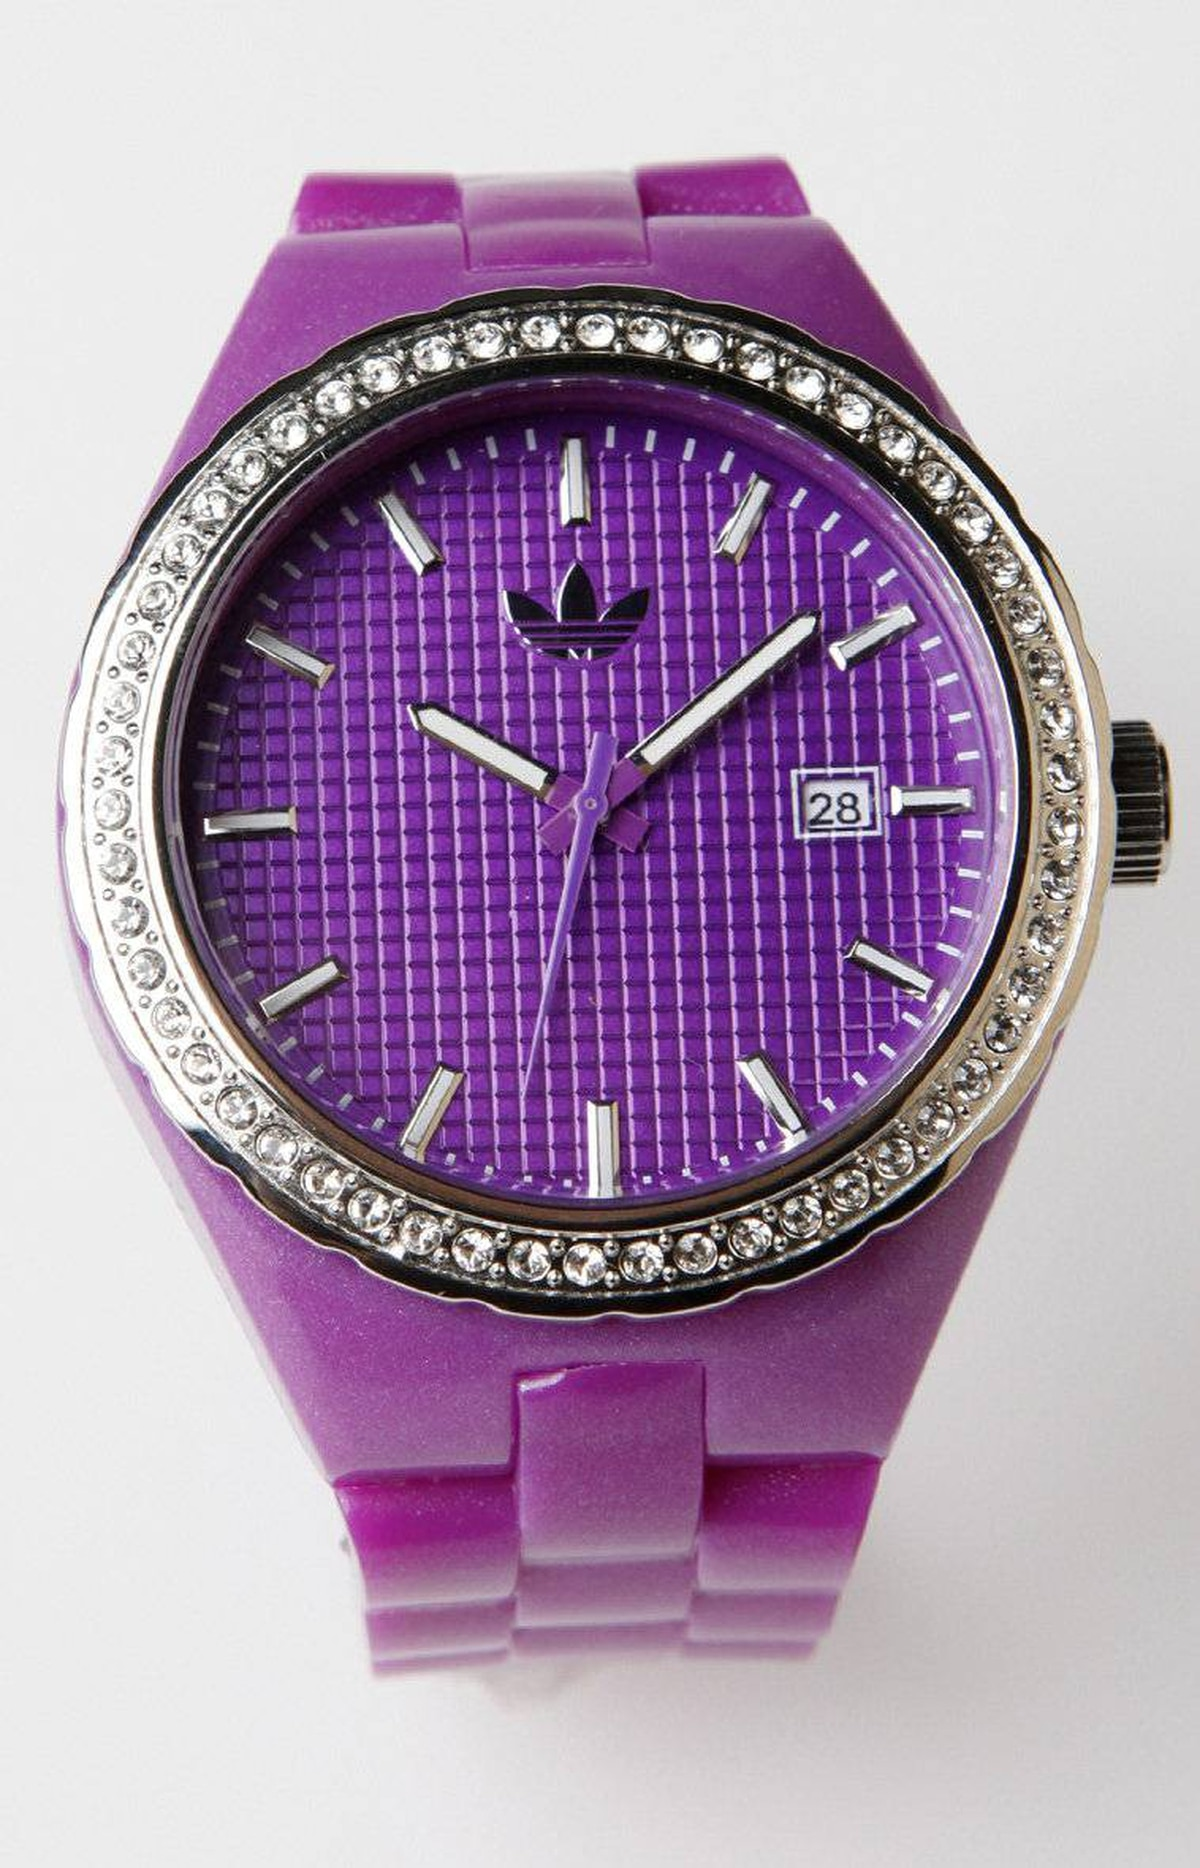 Adidas watch (large face lighter pink-purple), $95 at Adidas Originals (www.adidas.com)